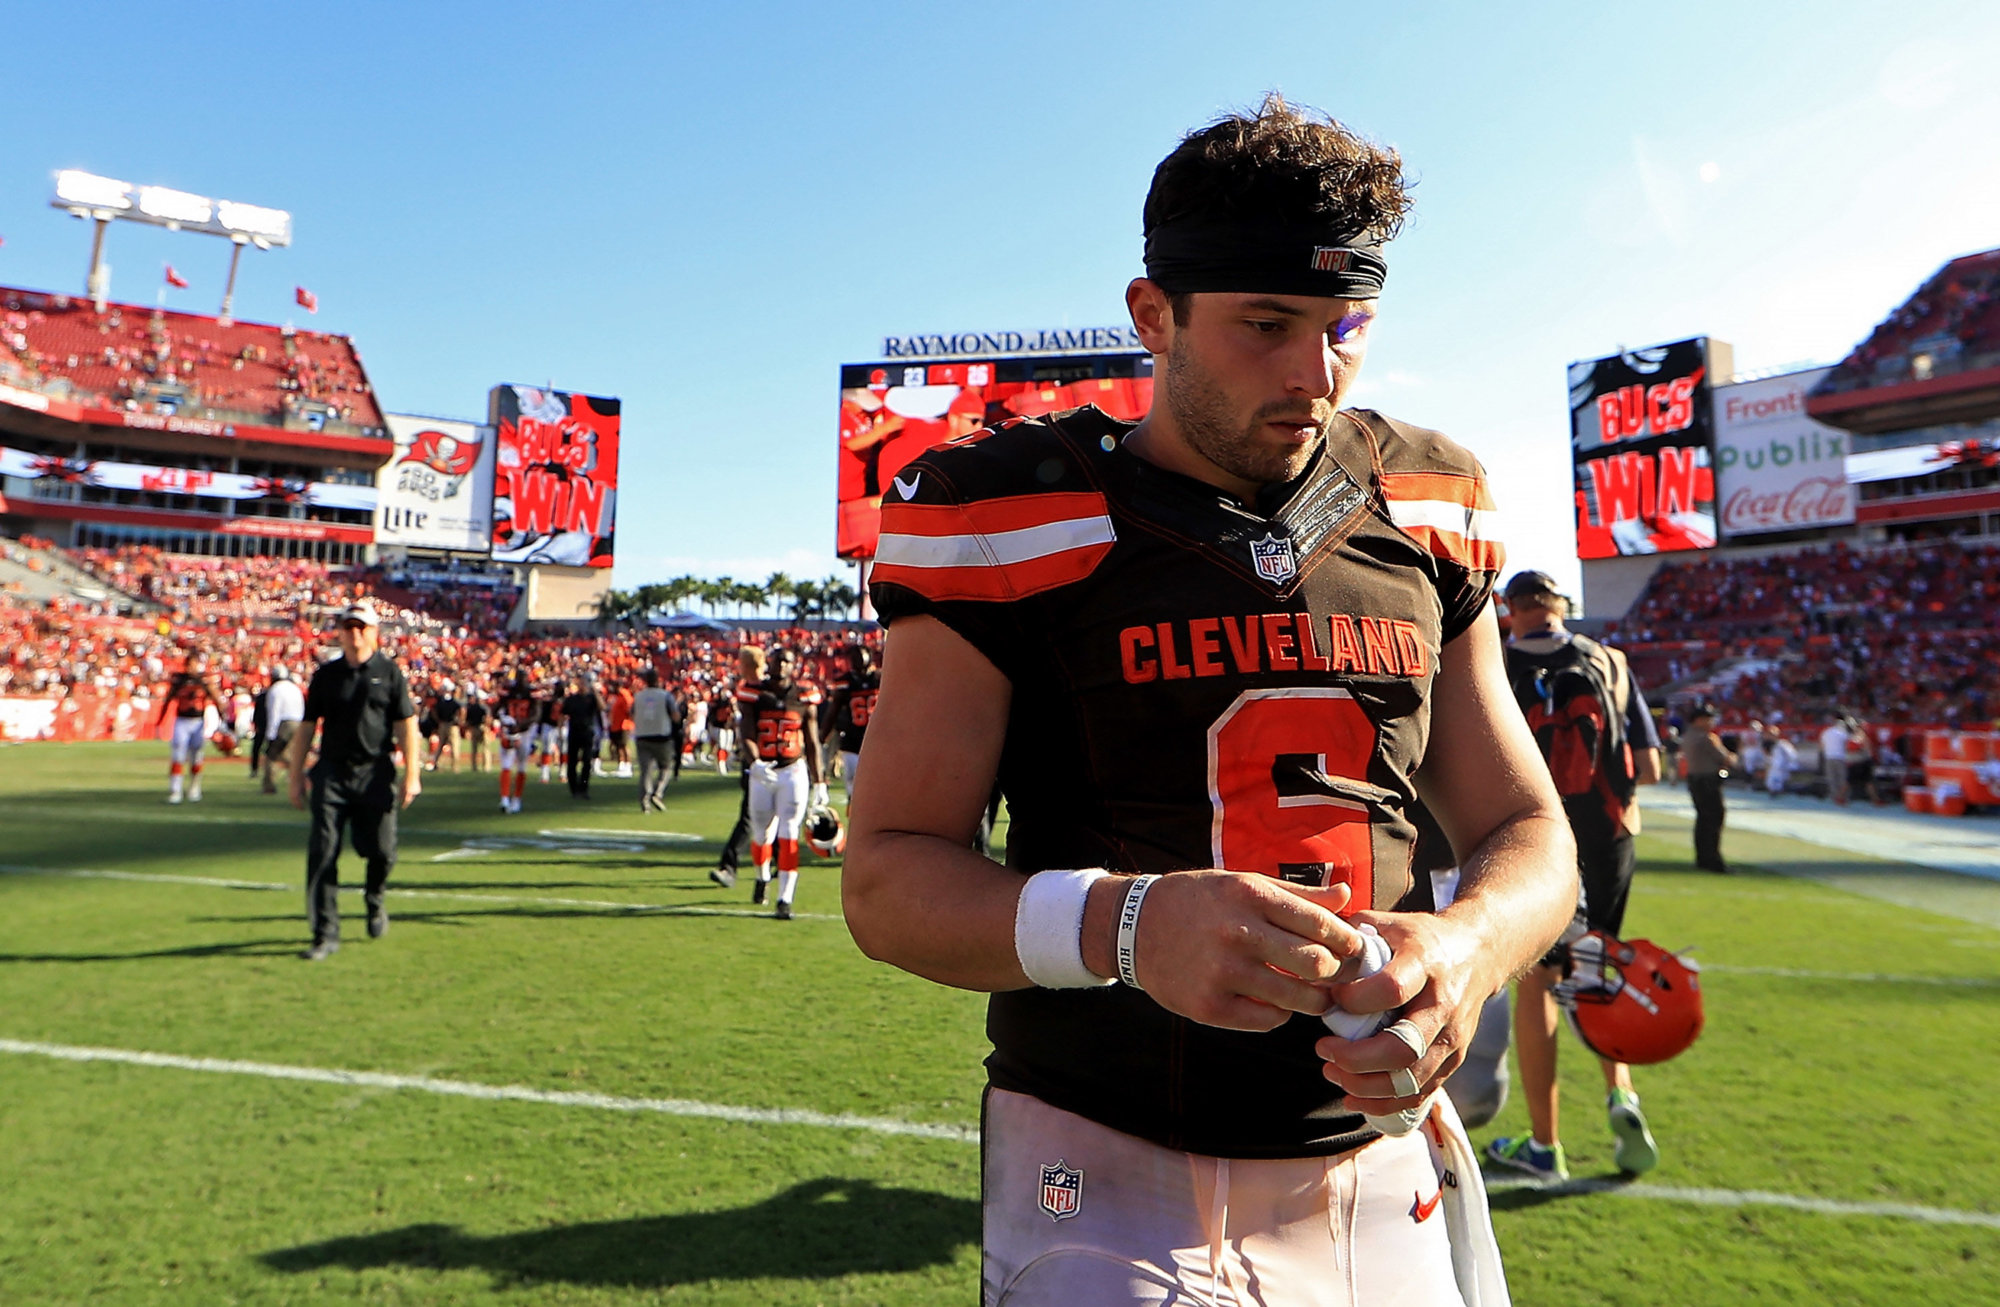 TAMPA, FL - OCTOBER 21:  Baker Mayfield #6 of the Cleveland Browns walks off the field during a game against the Tampa Bay Buccaneers at Raymond James Stadium on October 21, 2018 in Tampa, Florida.  (Photo by Mike Ehrmann/Getty Images)